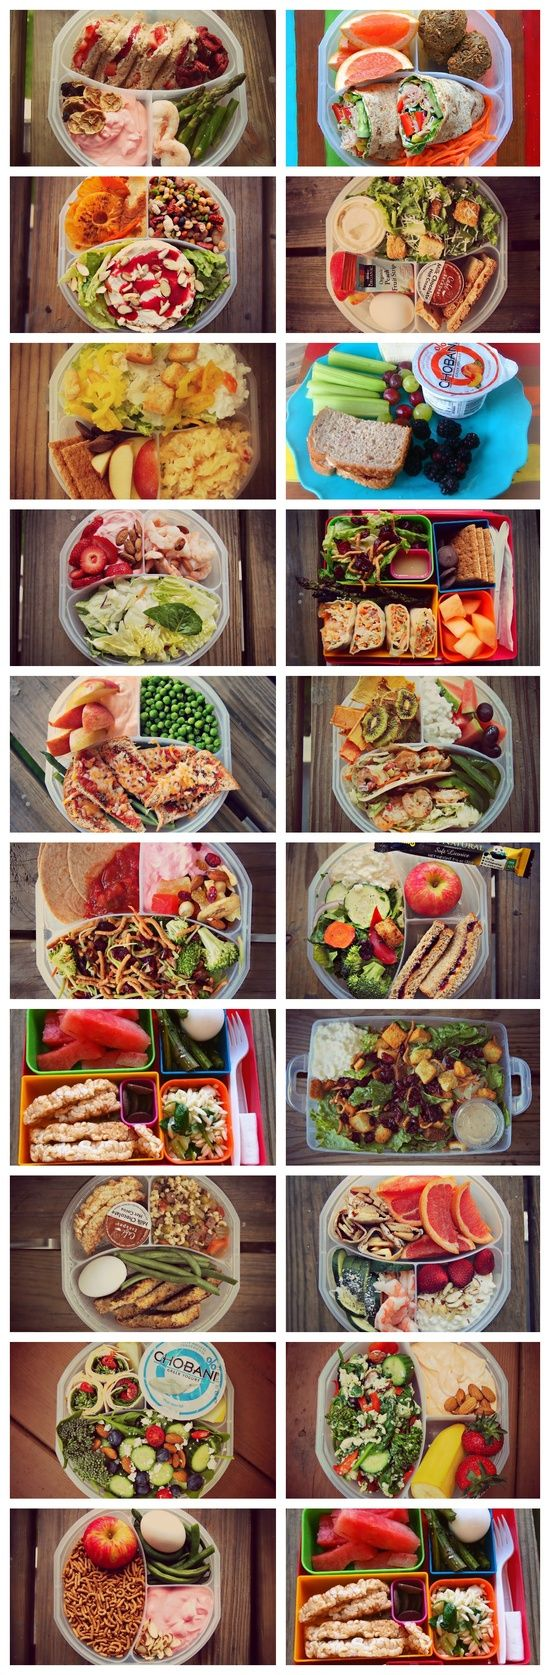 Healthy Lunch Ideas galore :)